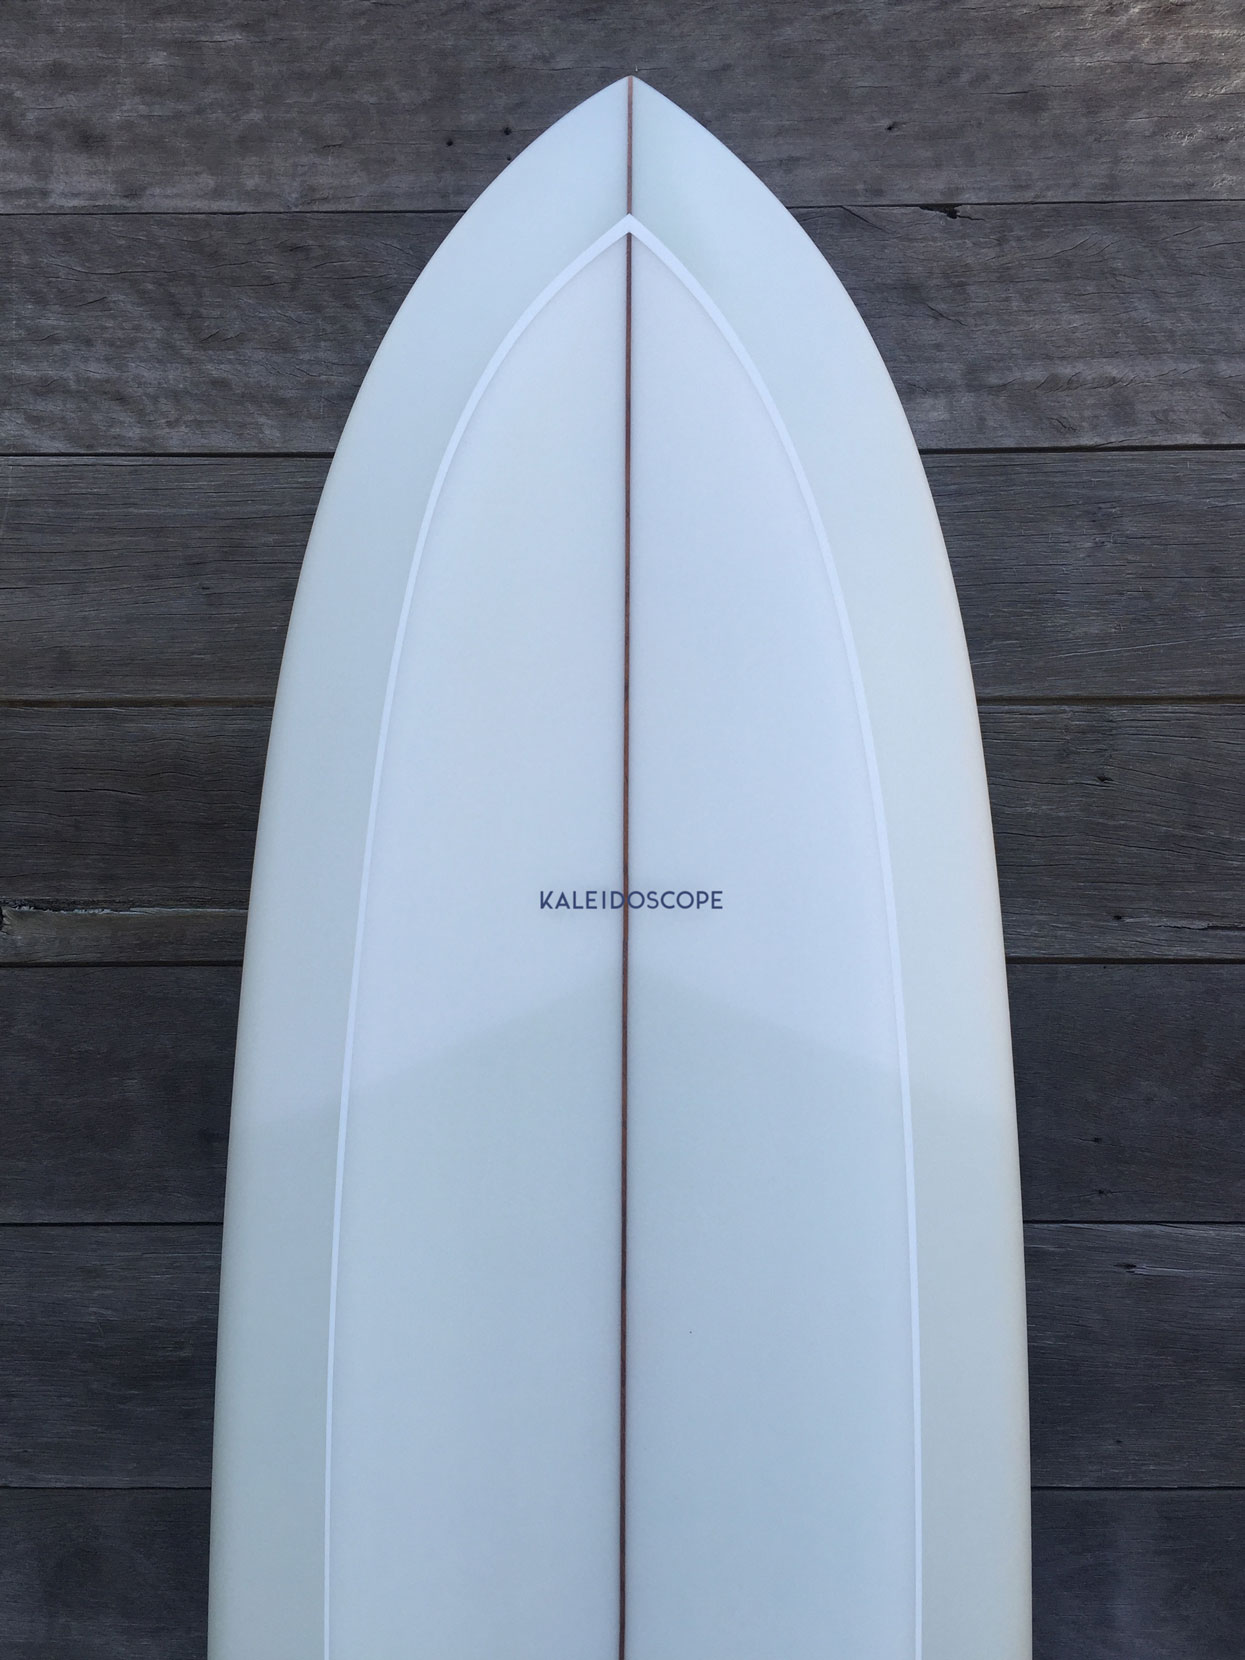 Kaleidoscope Surfboards logo on board - Strategy, Art Direction, Branding, Graphic & Digital Design Advertising Graphic Design Pacifica agency Byron Bay